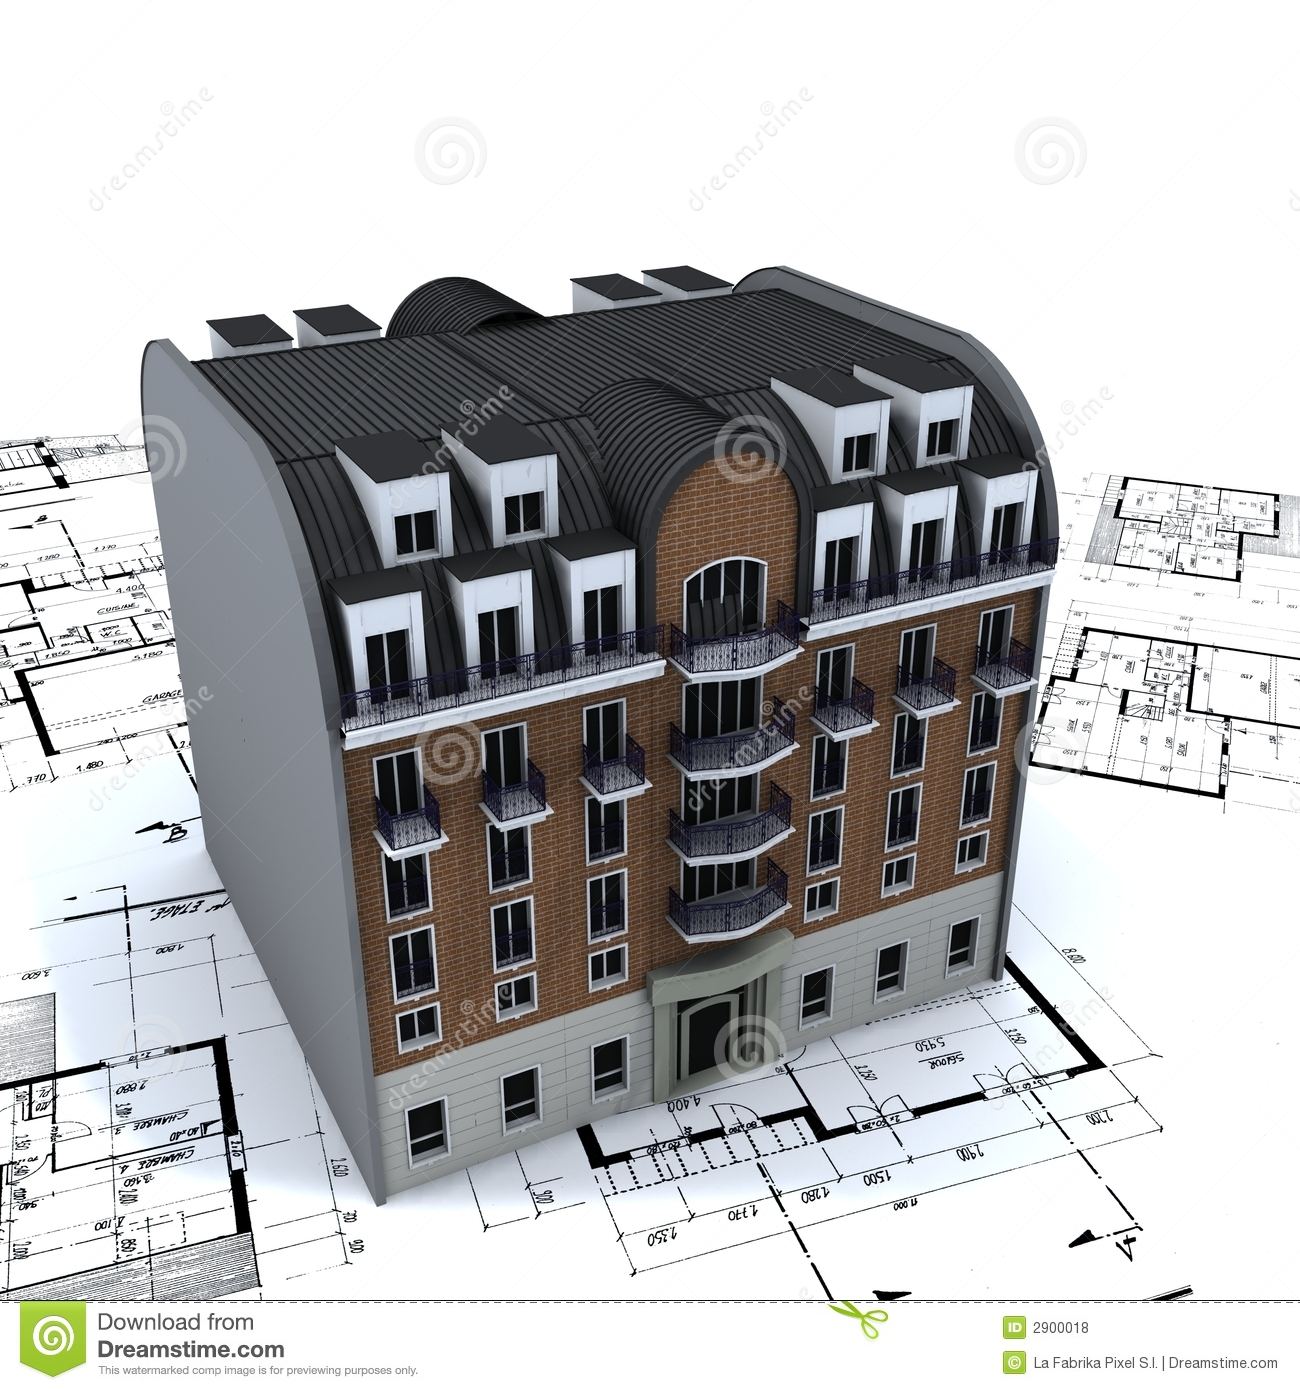 Residential building on plans royalty free stock photos for Residential building plans